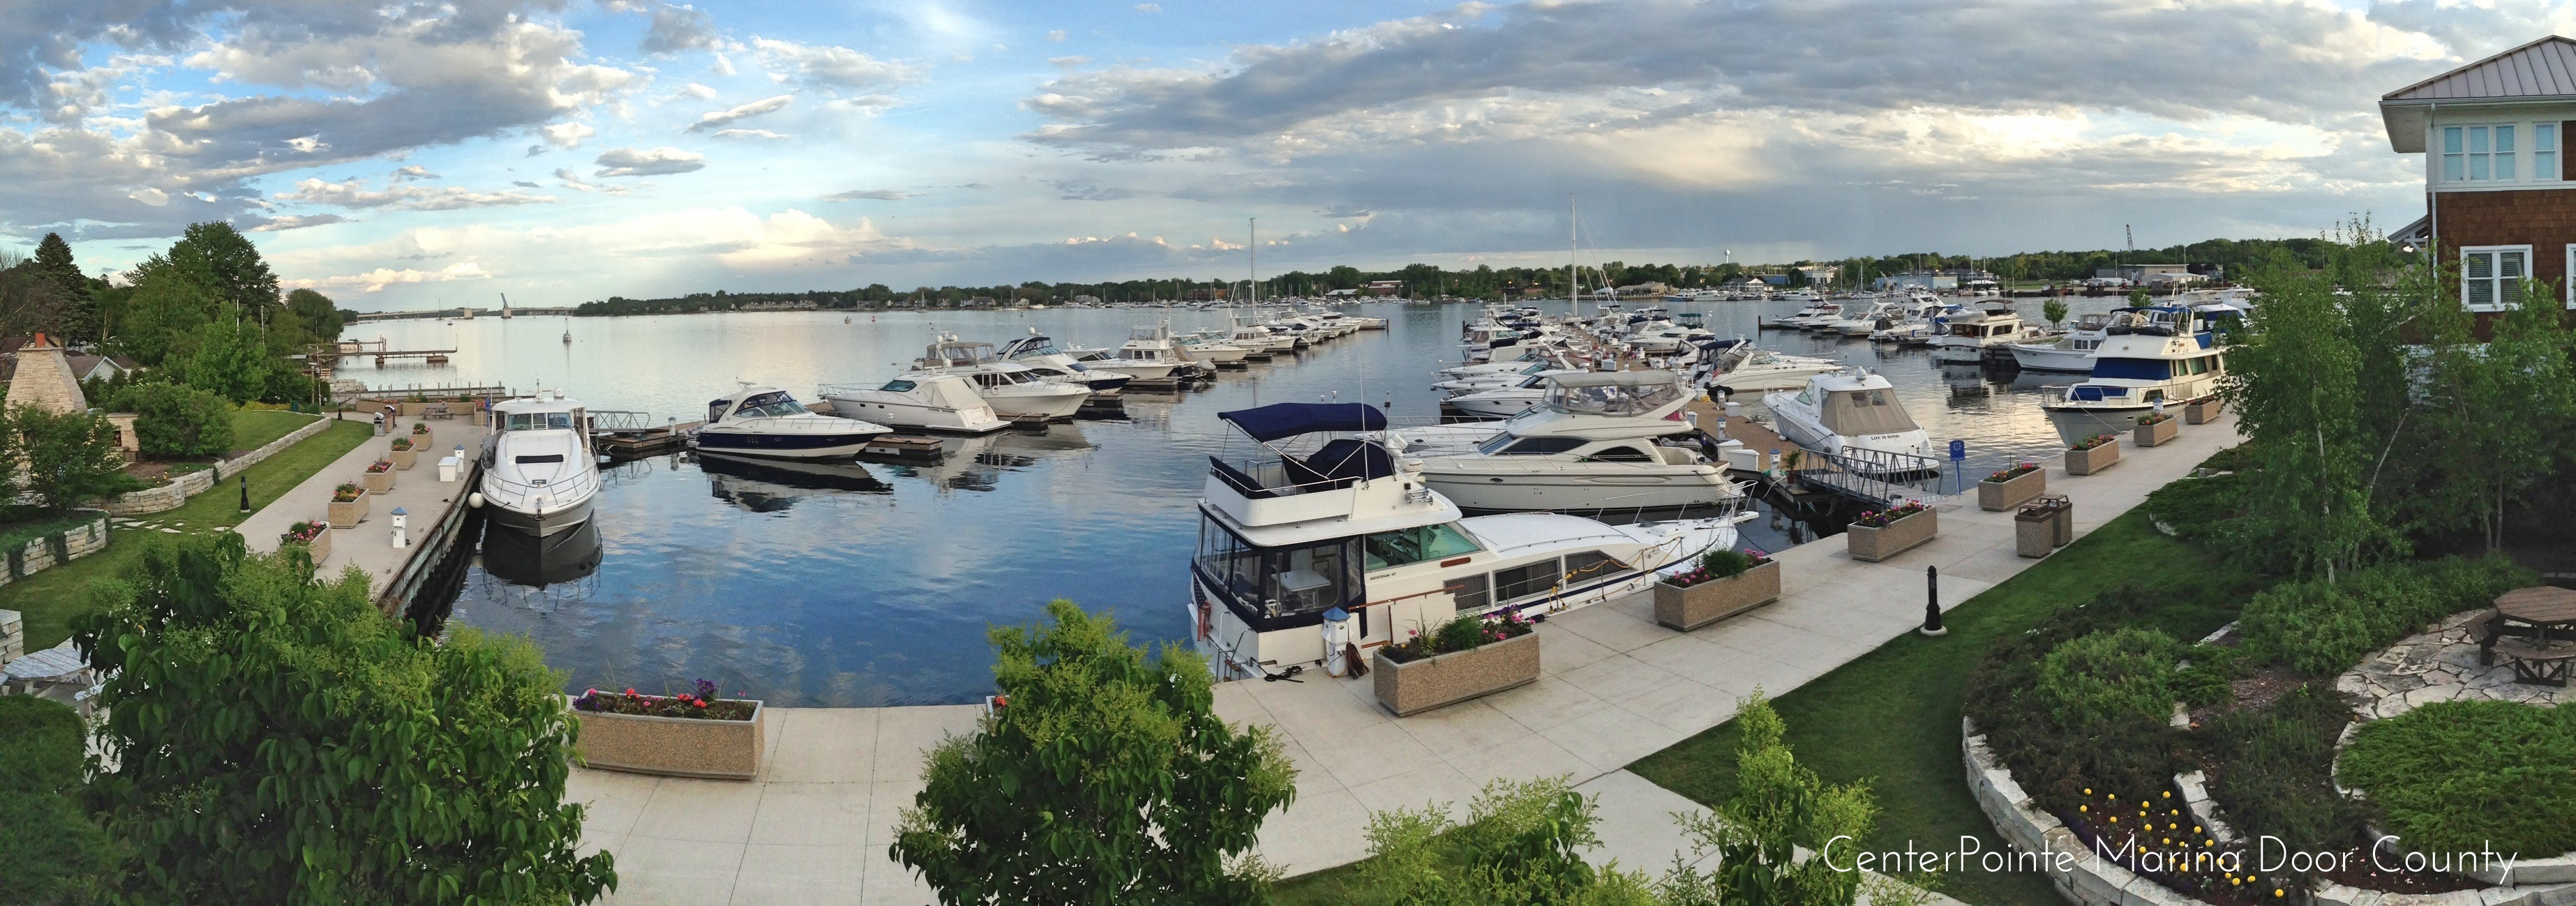 Slip Rates | CenterPointe Yacht Services | Door County